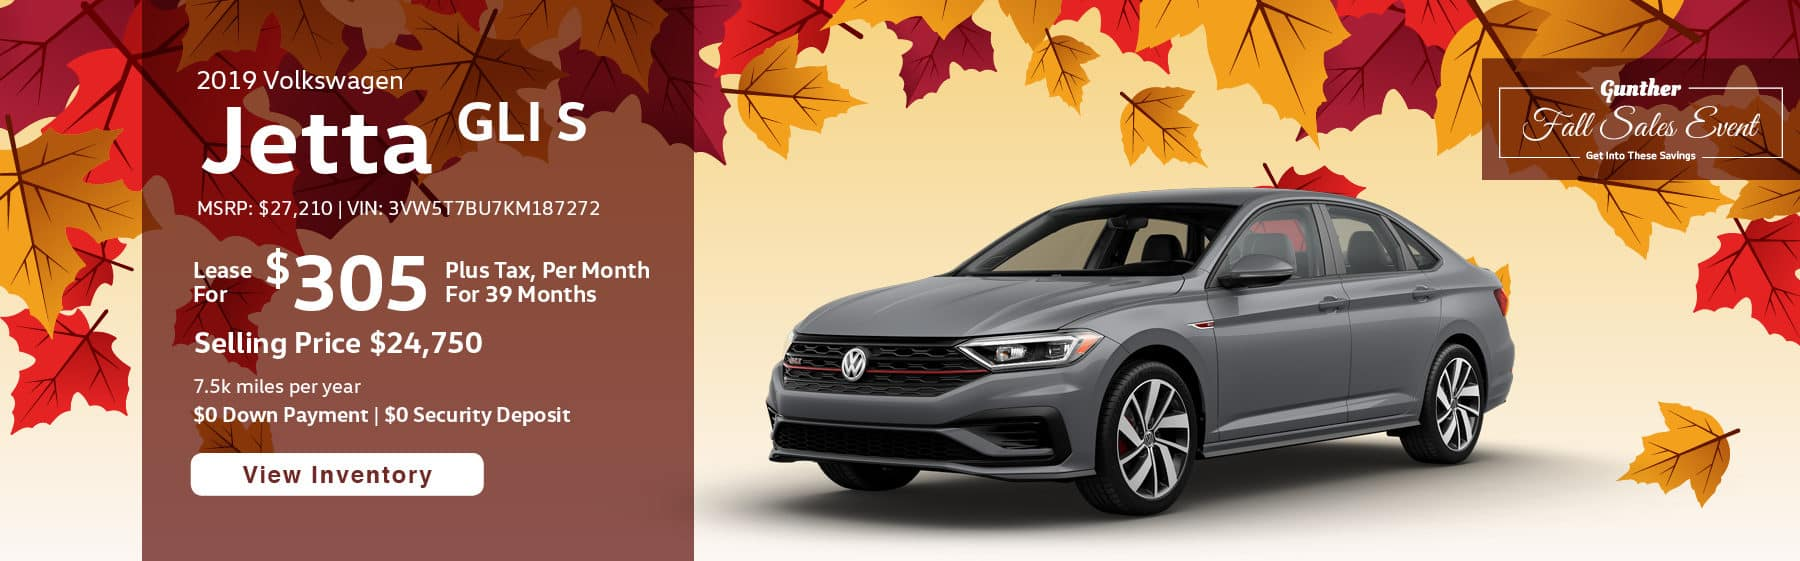 Lease the 2019 Volkswagen Jetta GLI S for $305 plus tax for 39 months. $0 Down payment required.